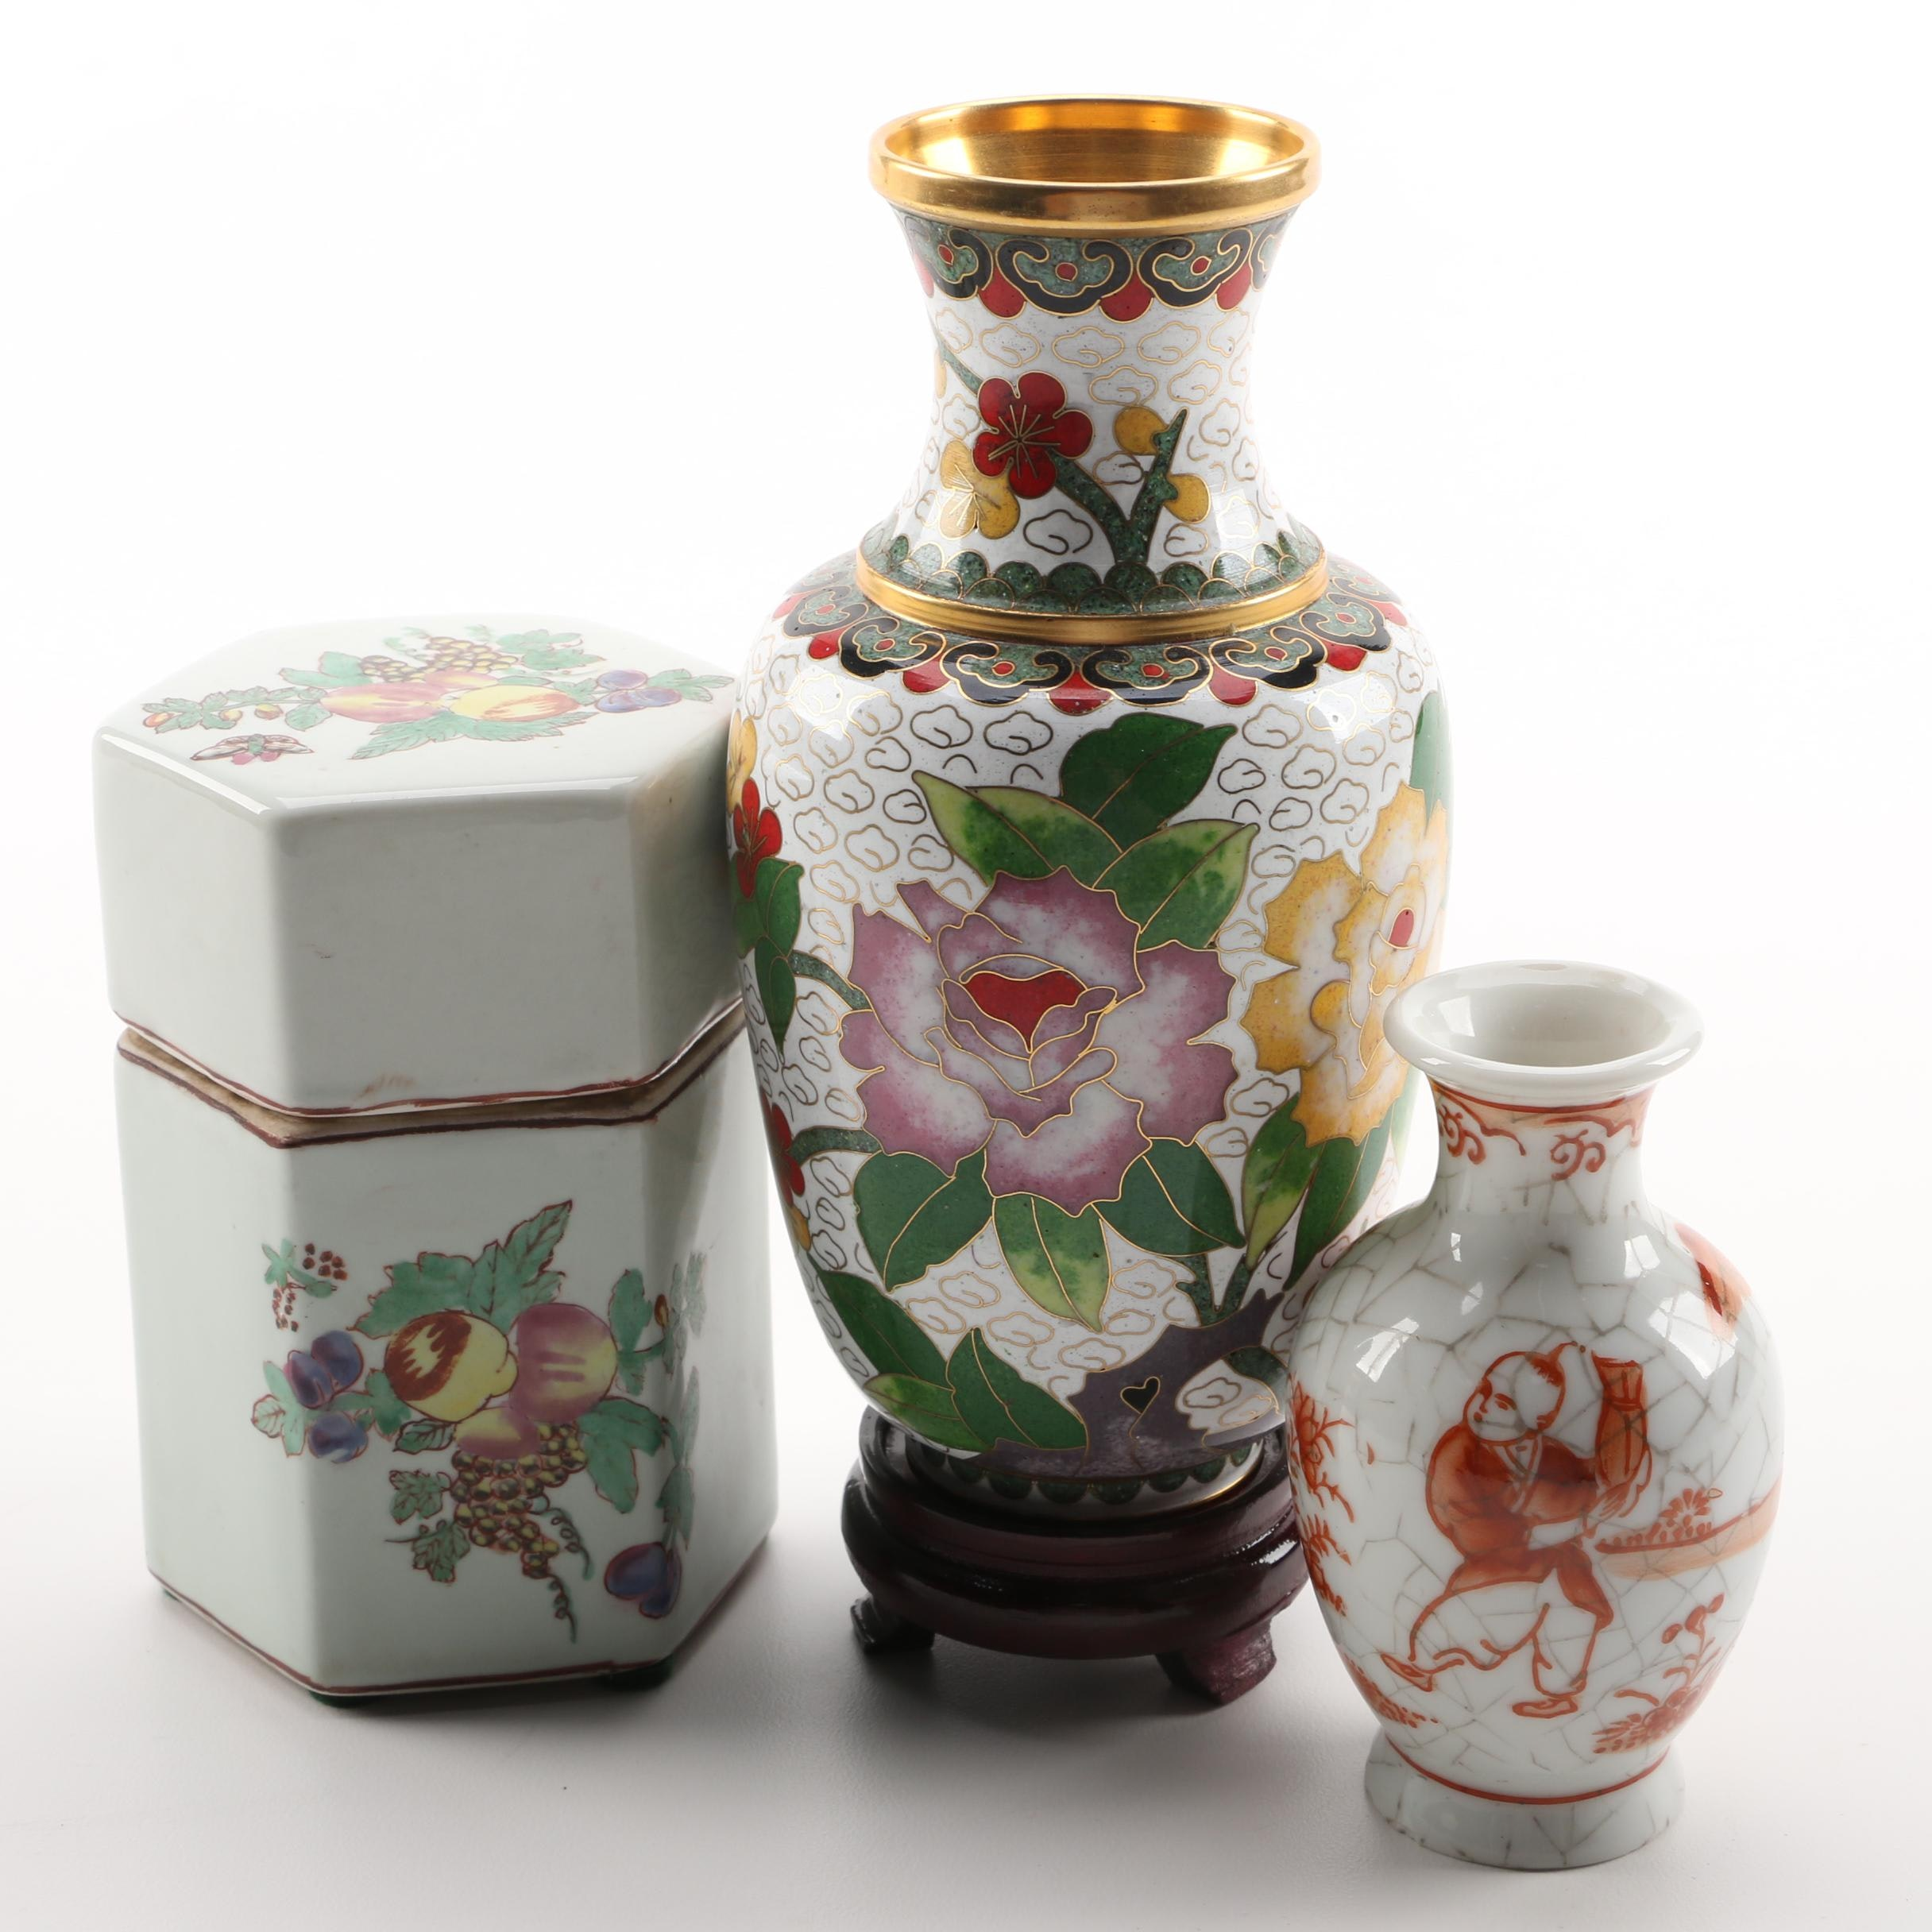 Chinese Ceramic Vases and Vessels Including Cloisonné Vase